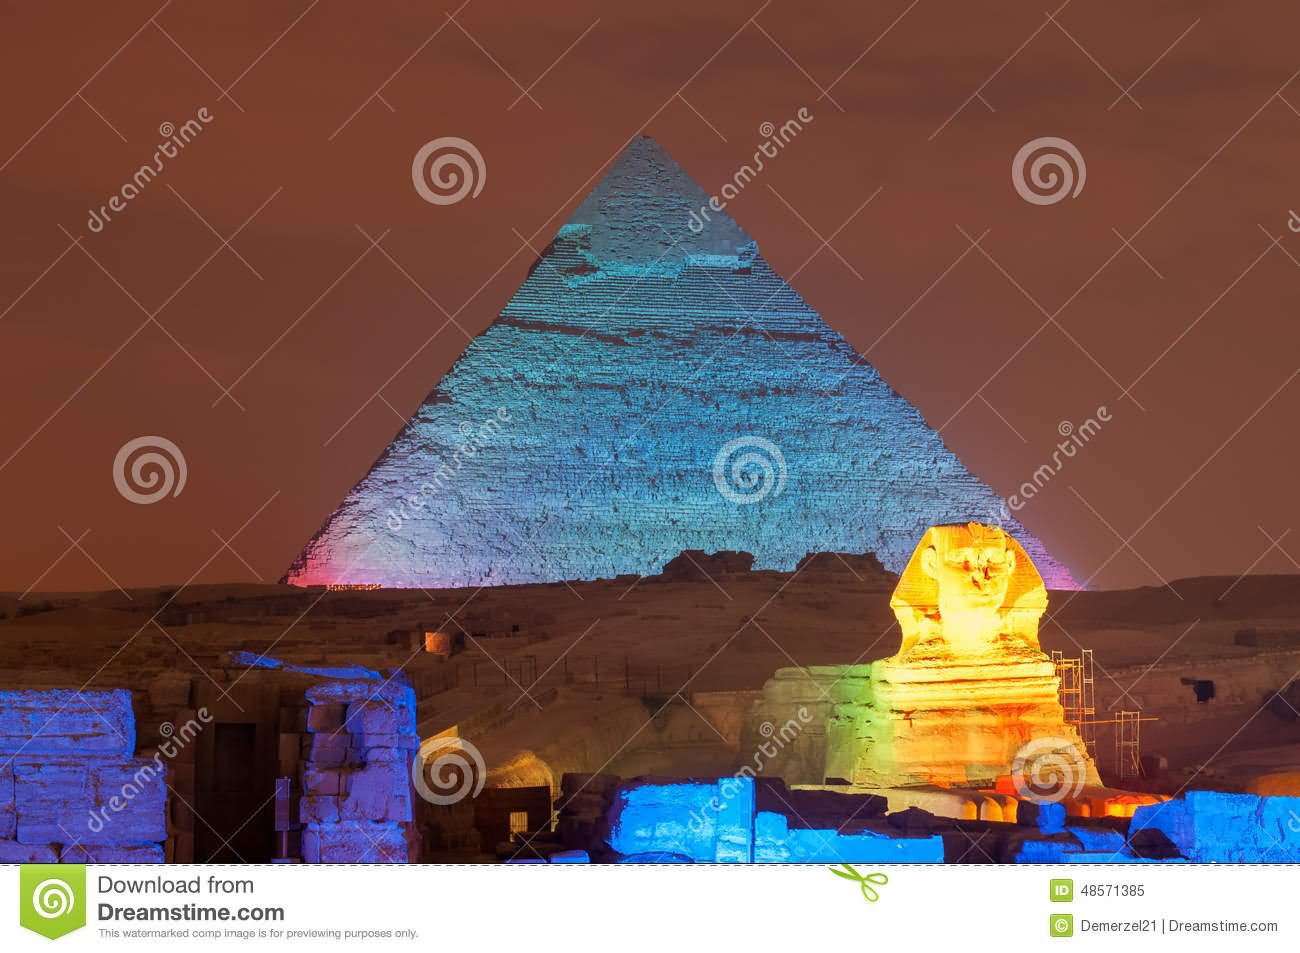 The Khufu Pyramid And Great Sphinx Of Giza Night View